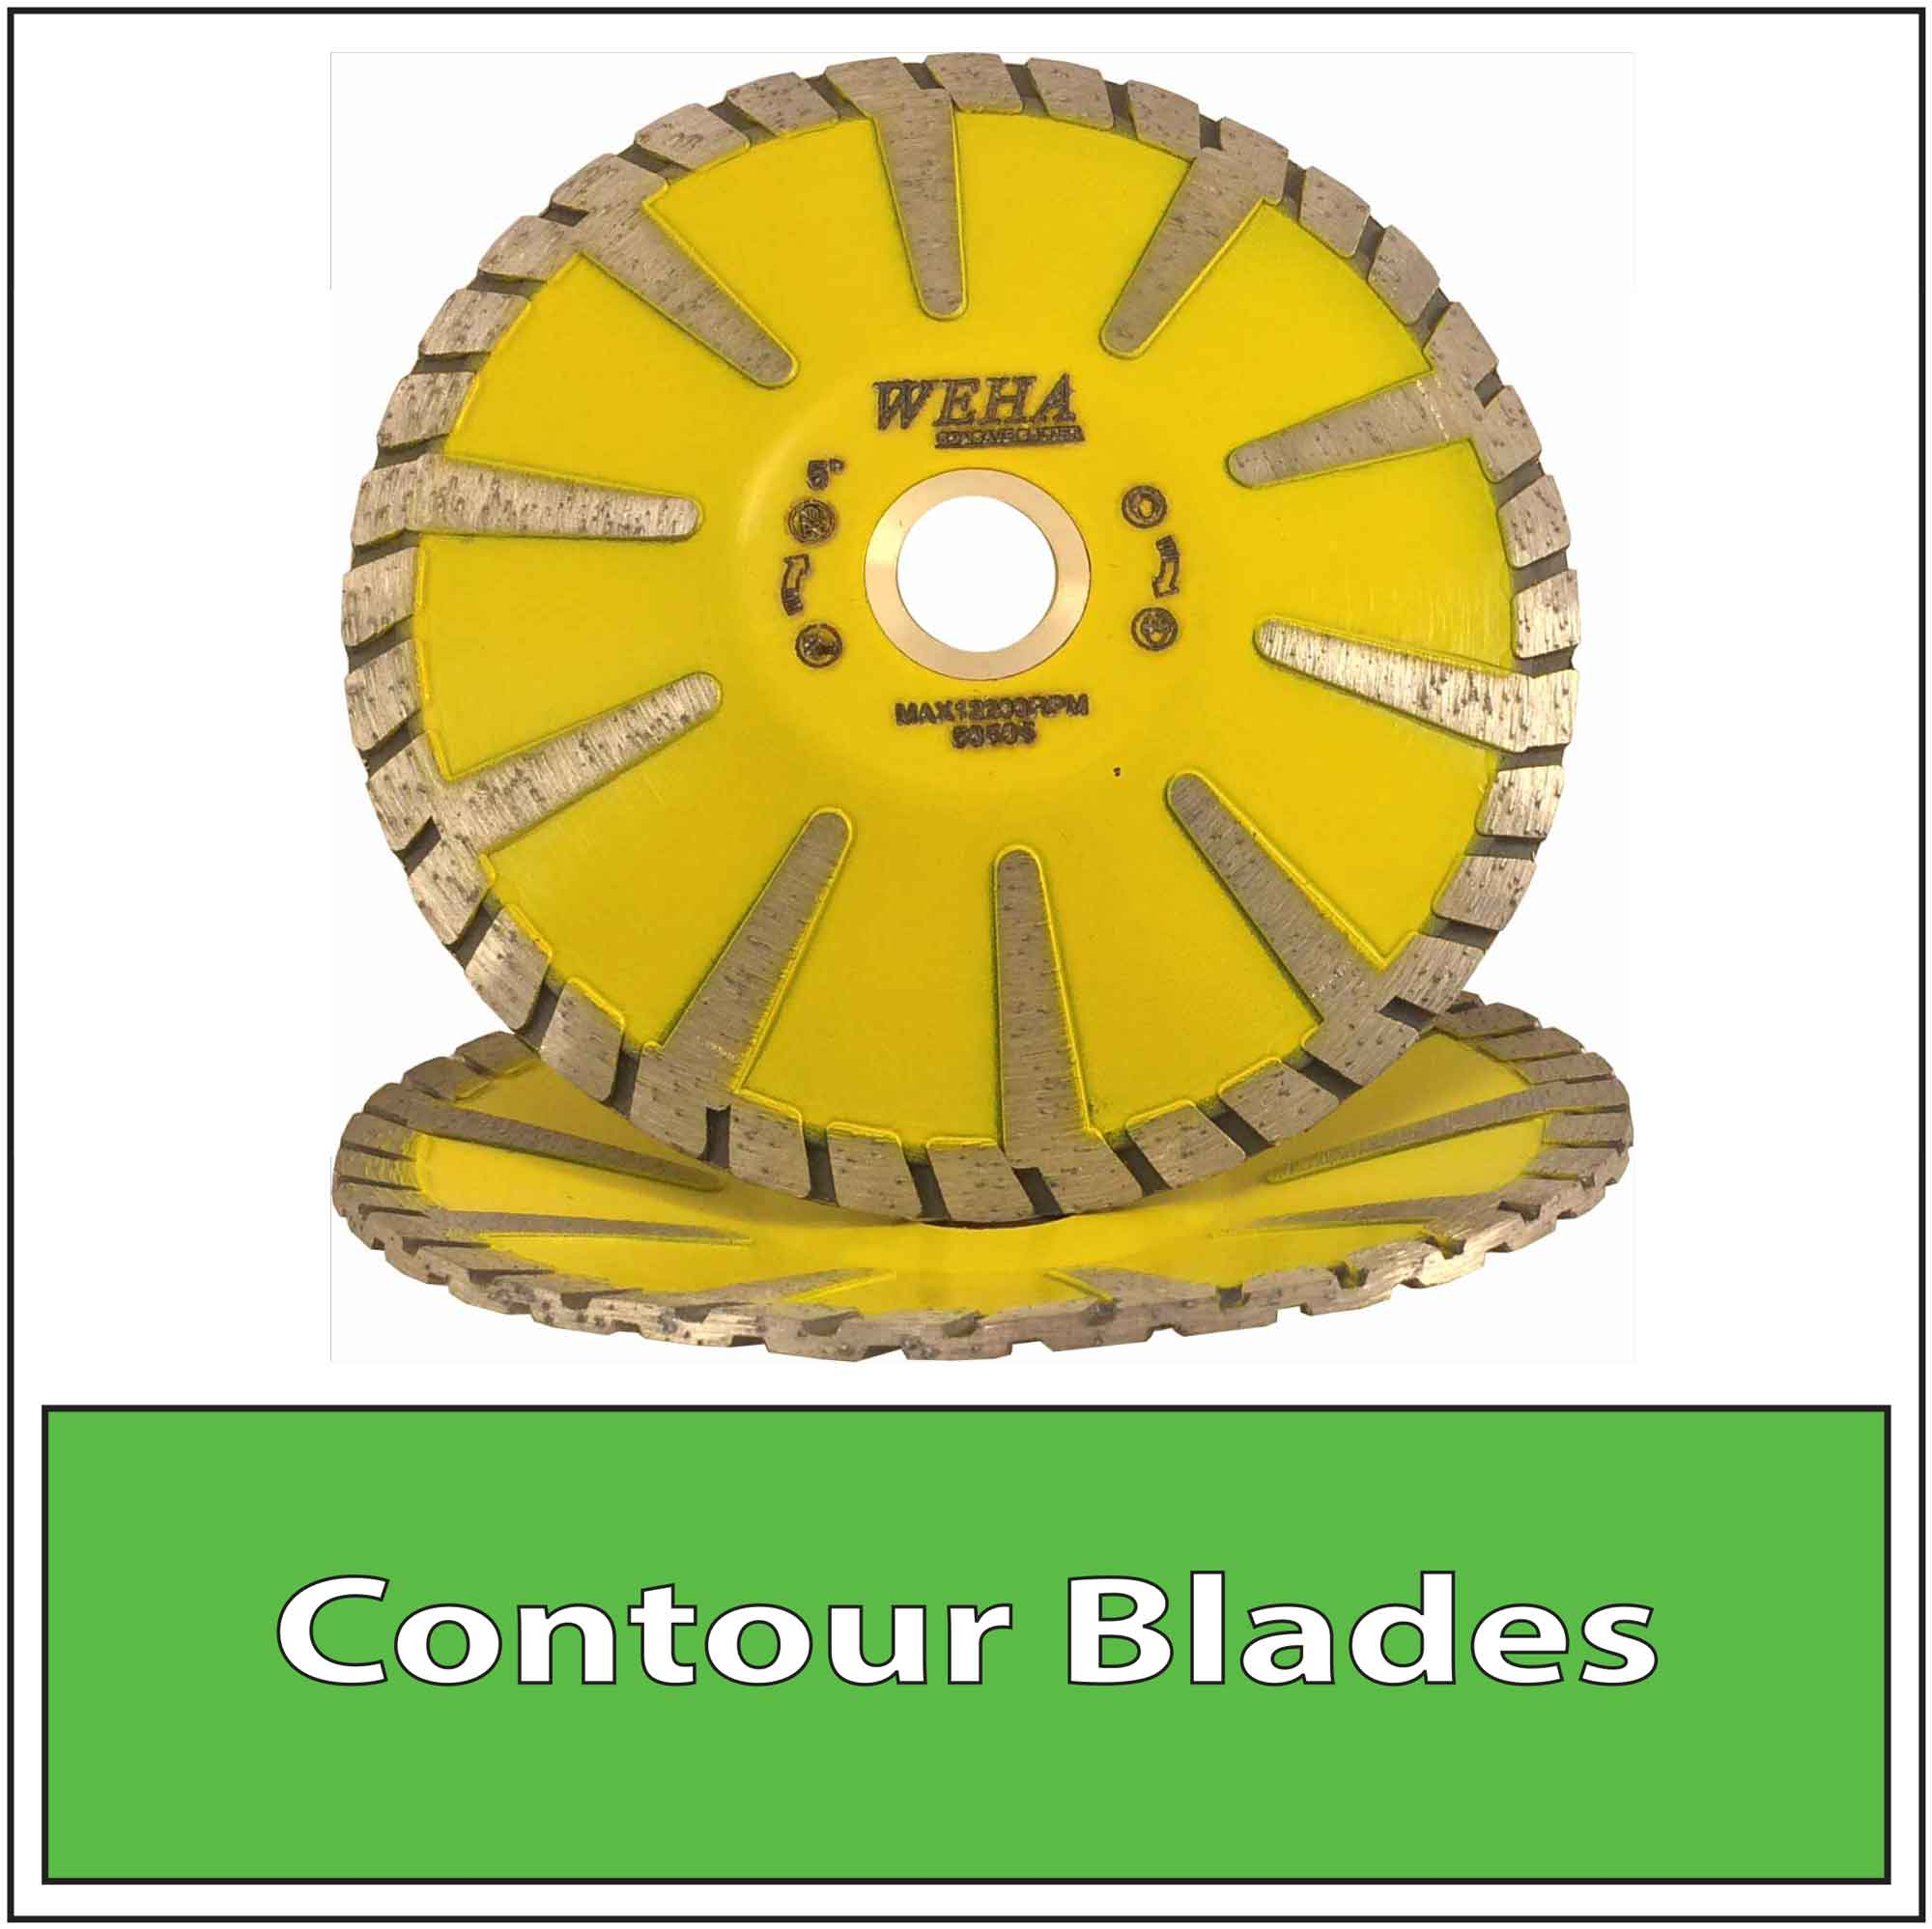 Granite Diamond Contour Blades Bowl Cutting Blade